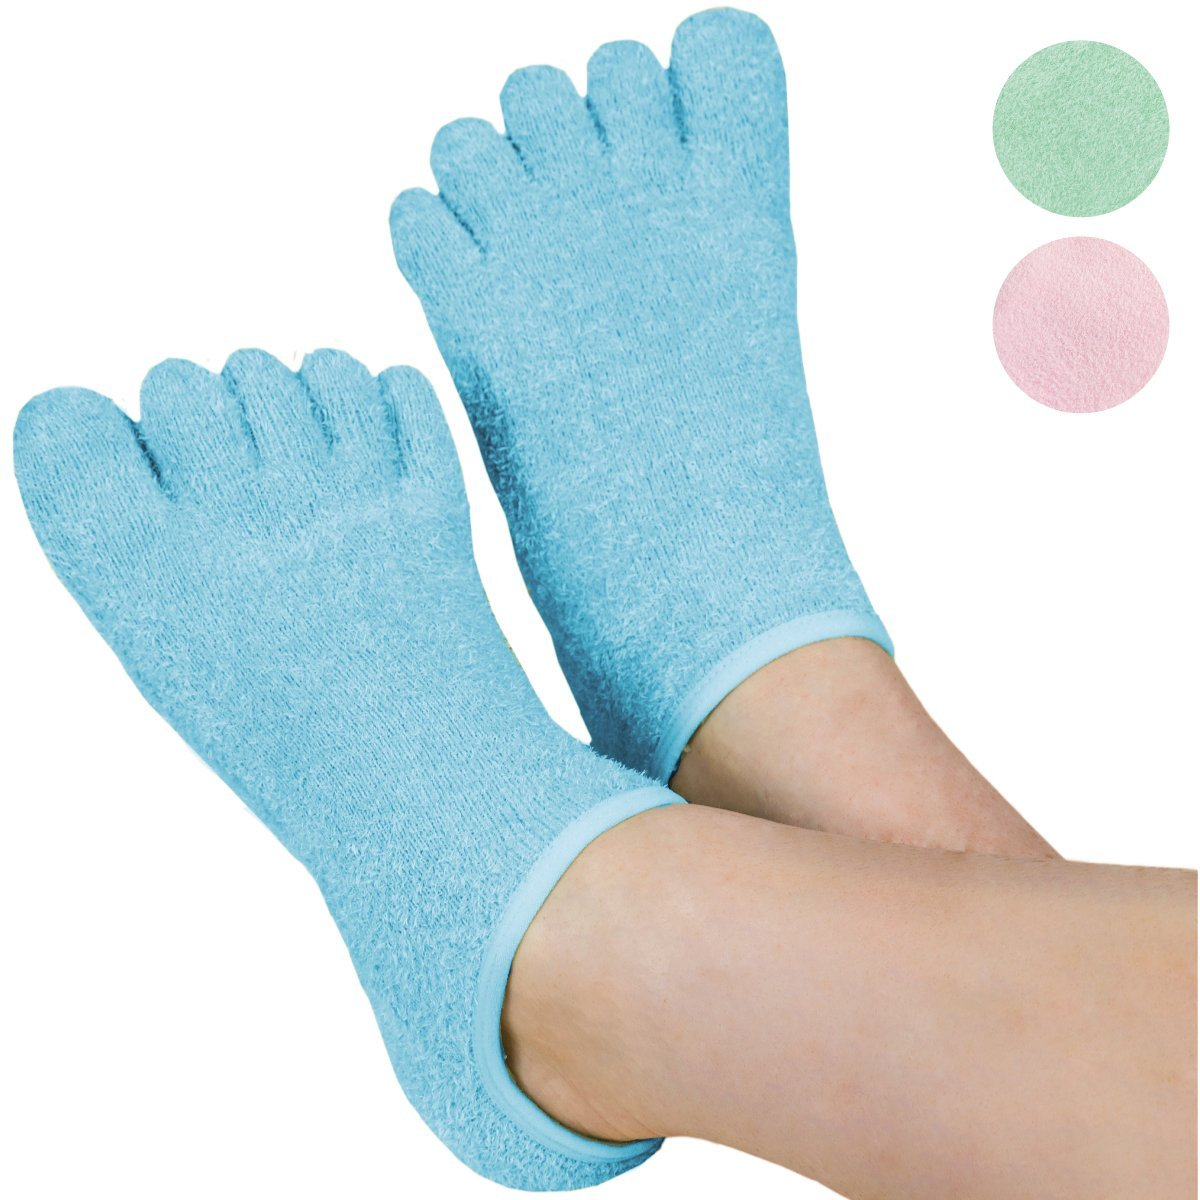 LE EMILIE 5-Toe Gel Moisturizing Socks for Women or Men | Helps Heal Dry Cracked Heels and Feet Infused with Aromatherapy Blend of Lavender and Jojoba Oil | 1 Pair, Aquamarine Blue